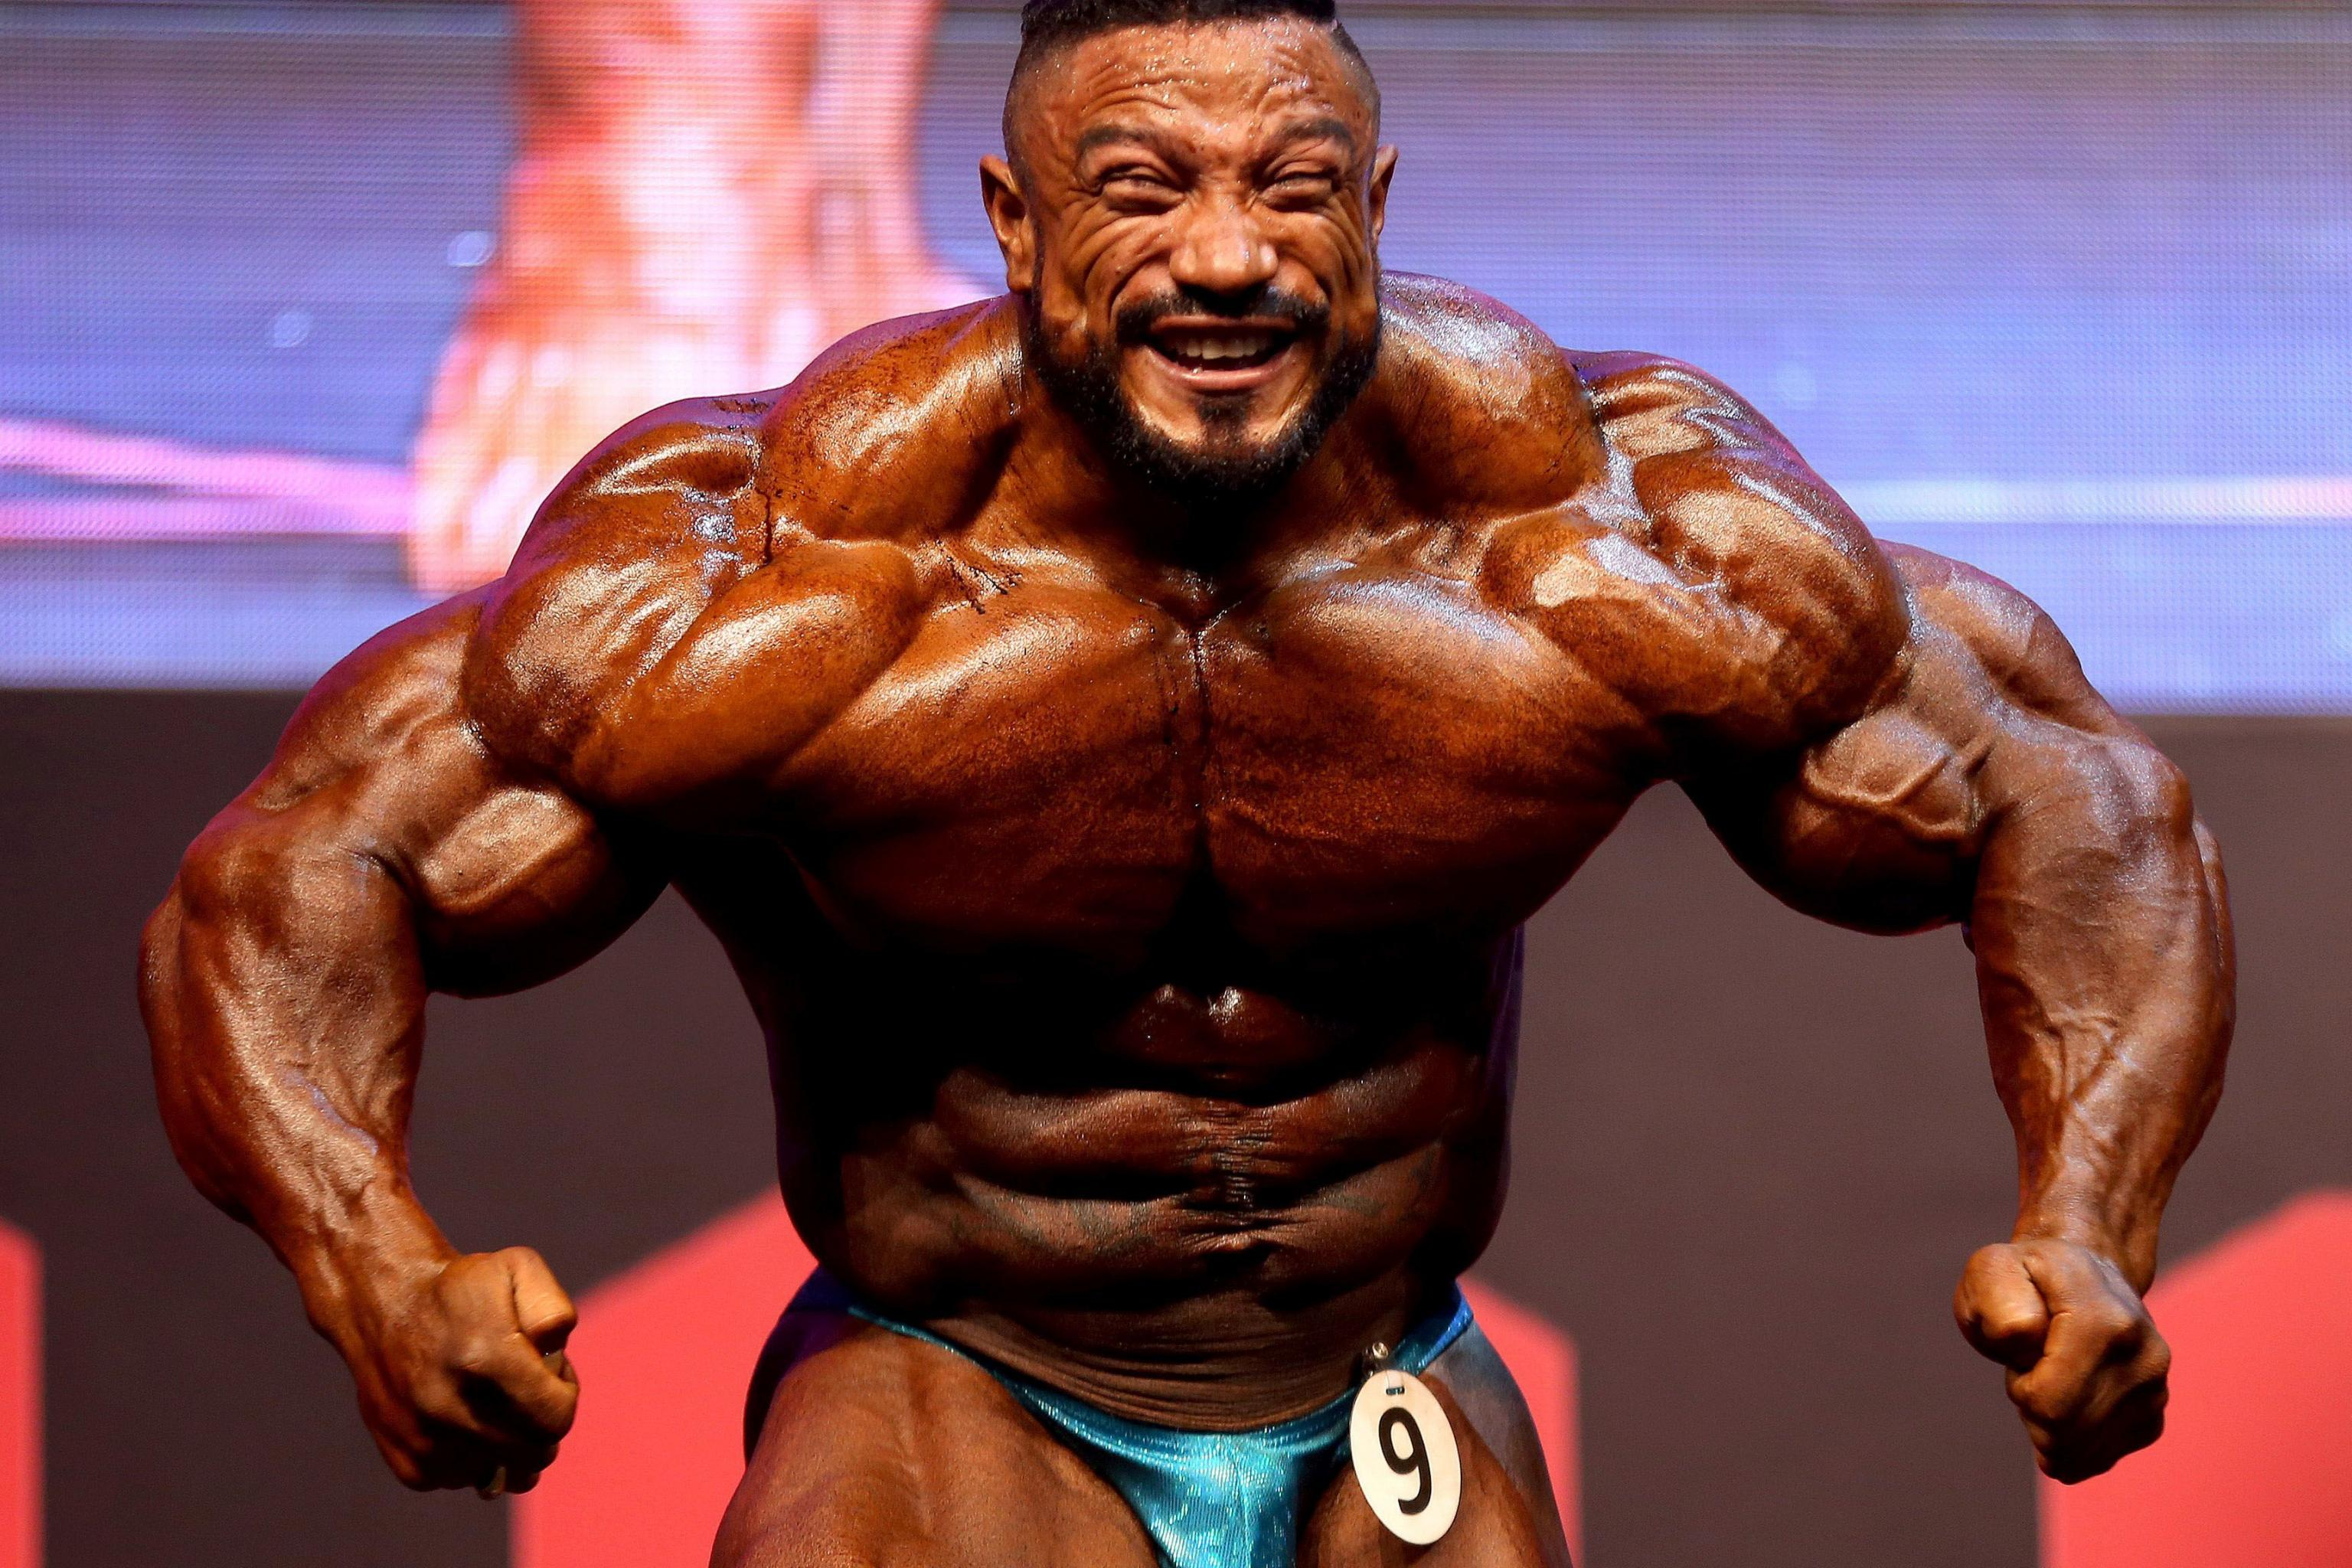 Mr Olympia 2019 Dates Schedule Prize Money Top Bodybuilders And Predictions Bleacher Report Latest News Videos And Highlights